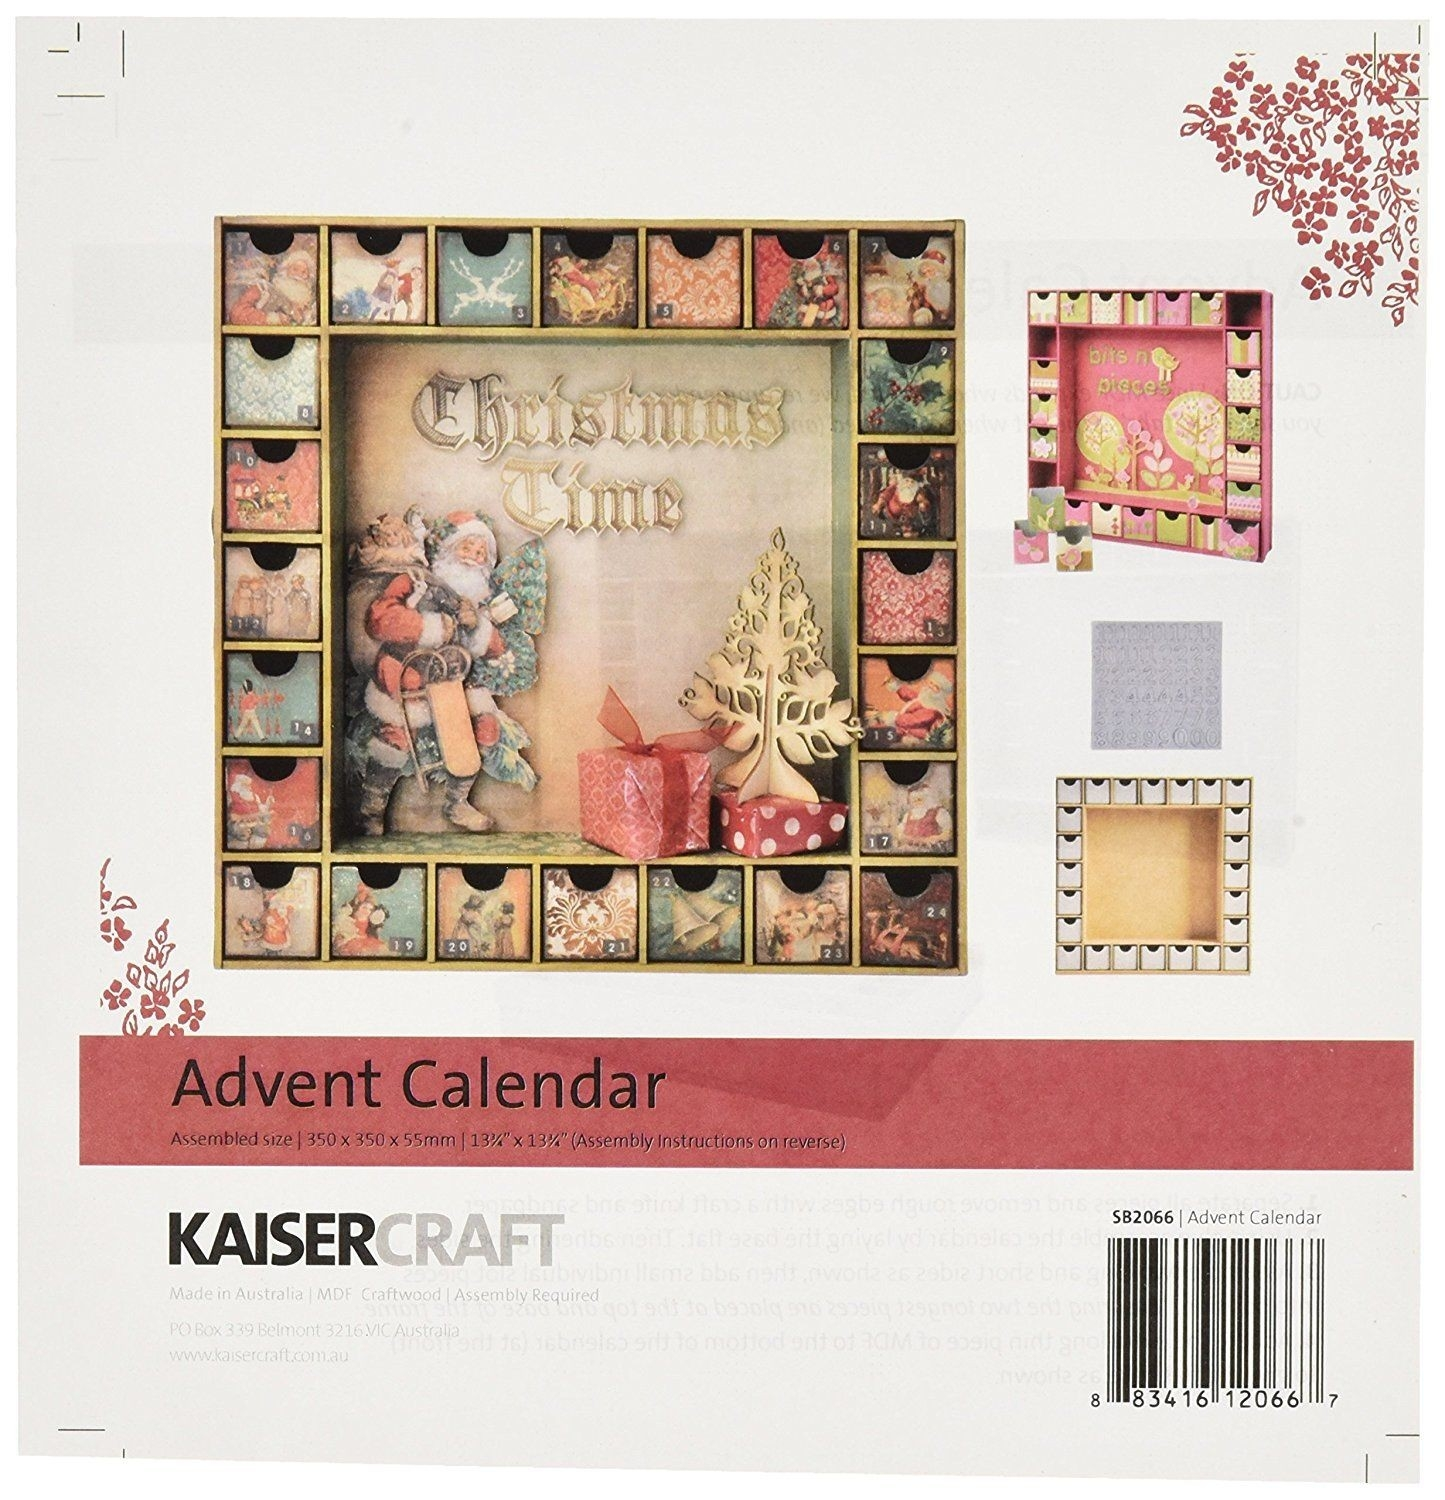 Amazon: Kaisercraft Beyond The Page Mdf Advent Calendar  Beyond The Page Mdf Advent Calendar